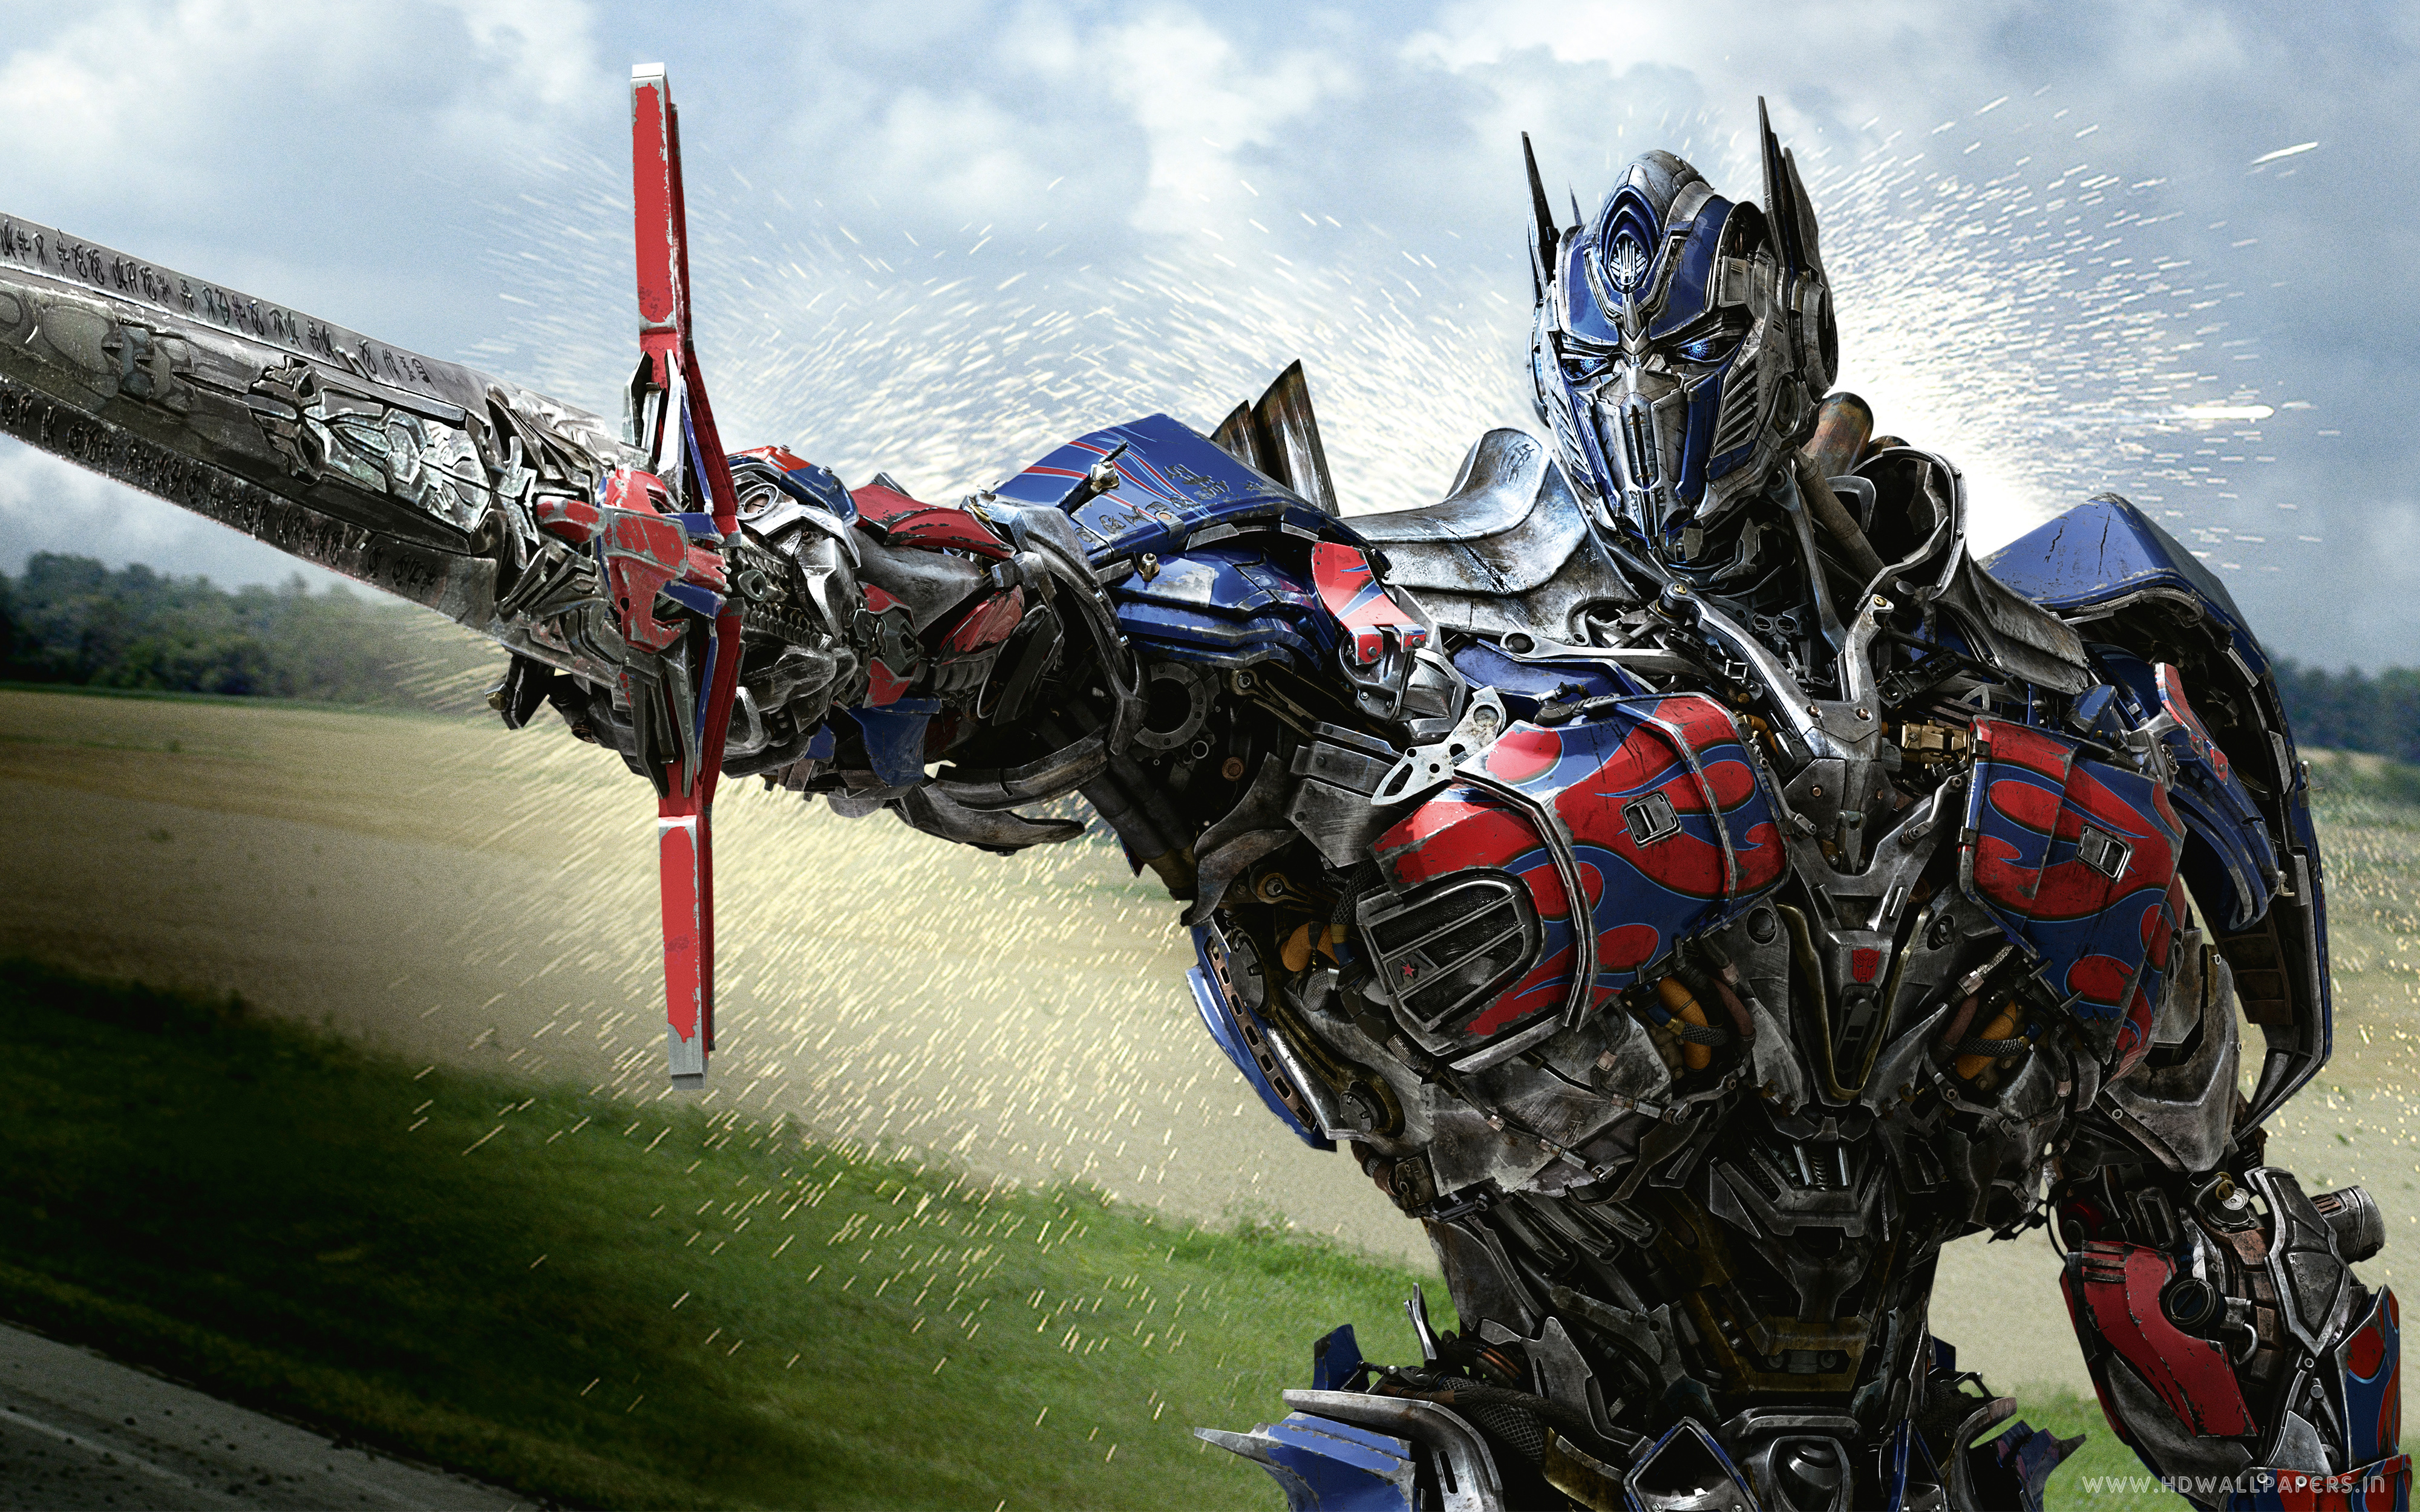 Optimus Prime In Transformers 4 Age Of Extinction - Optimus Prime Wallpaper Hd Transformers 4 - HD Wallpaper